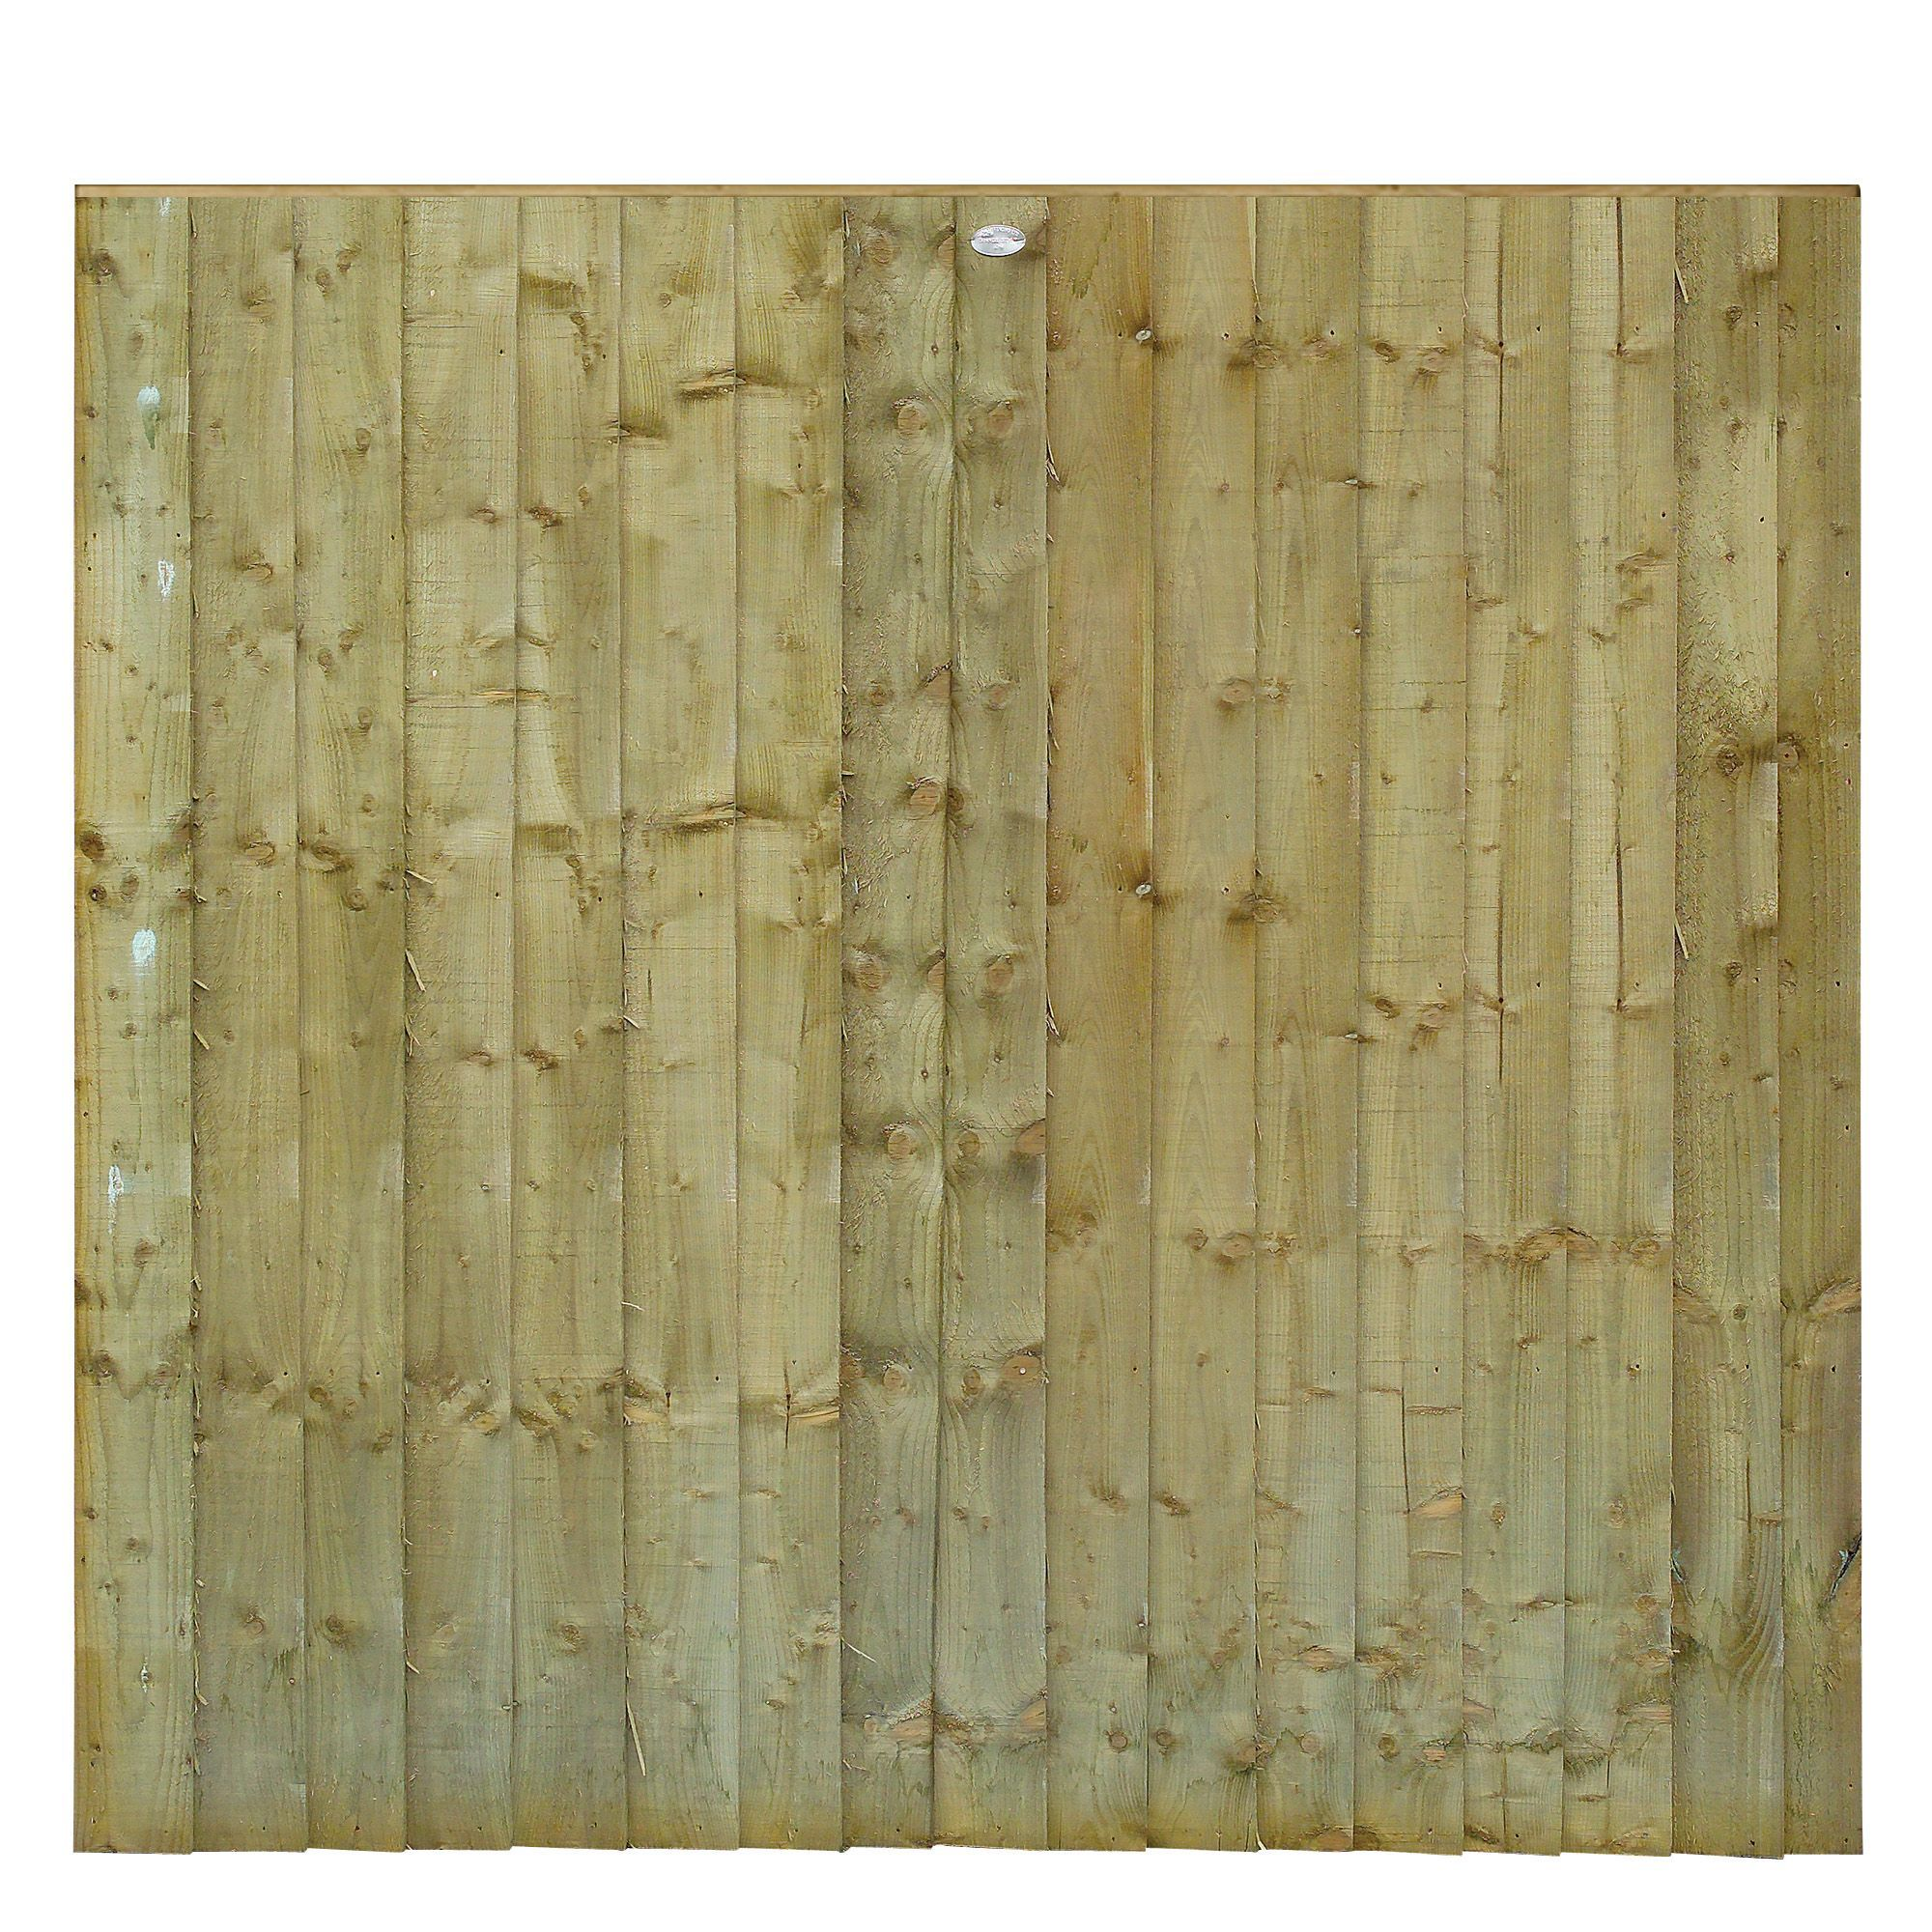 Grange Professional Feather Edge Overlap Vertical Slat Fence Panel (w)1.83 M (h)1.8m, Pack Of 3